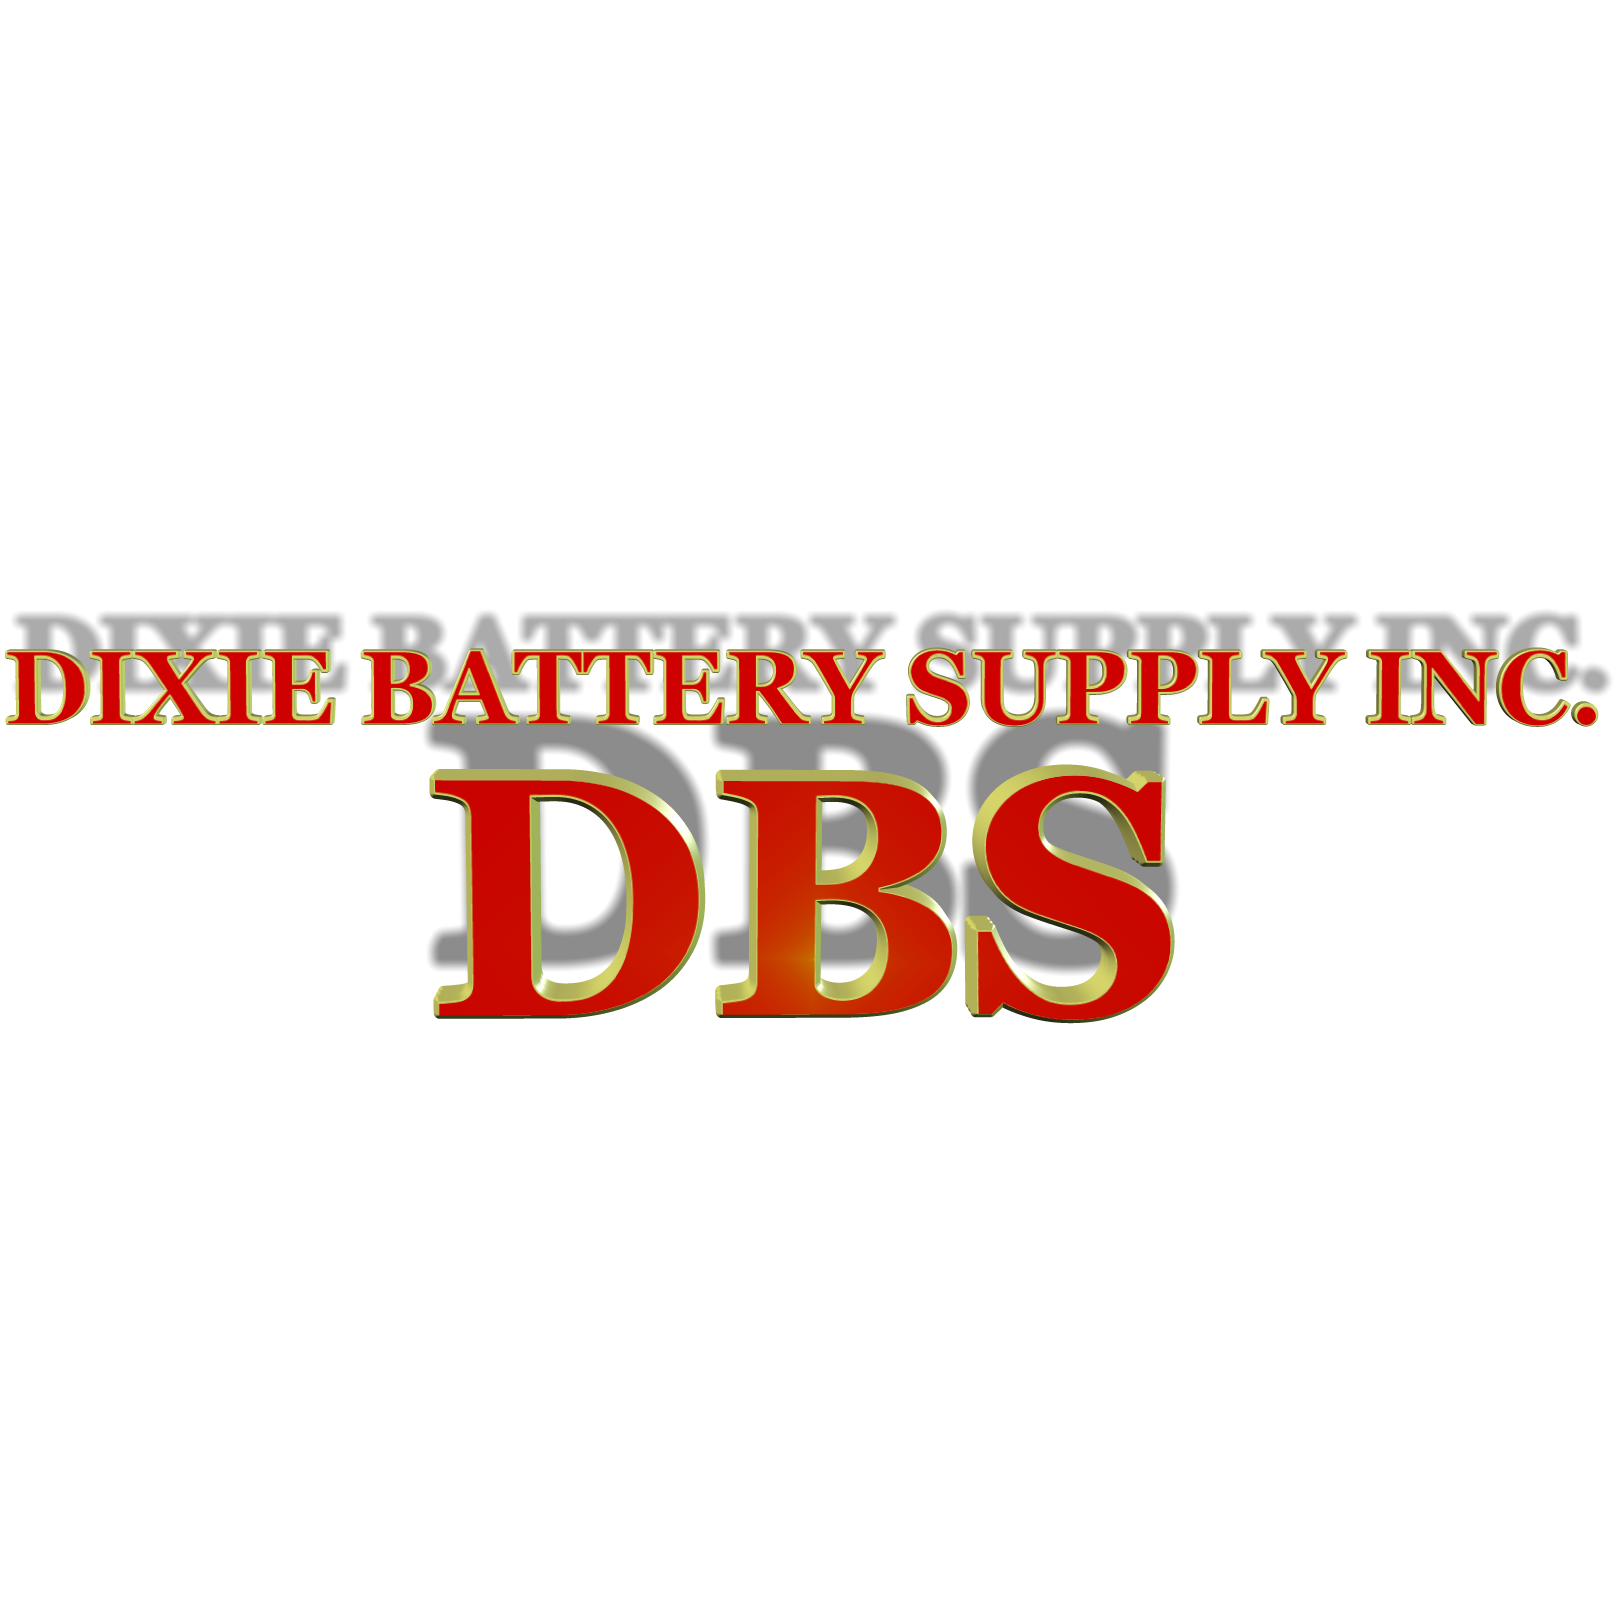 Dixie Battery Supply